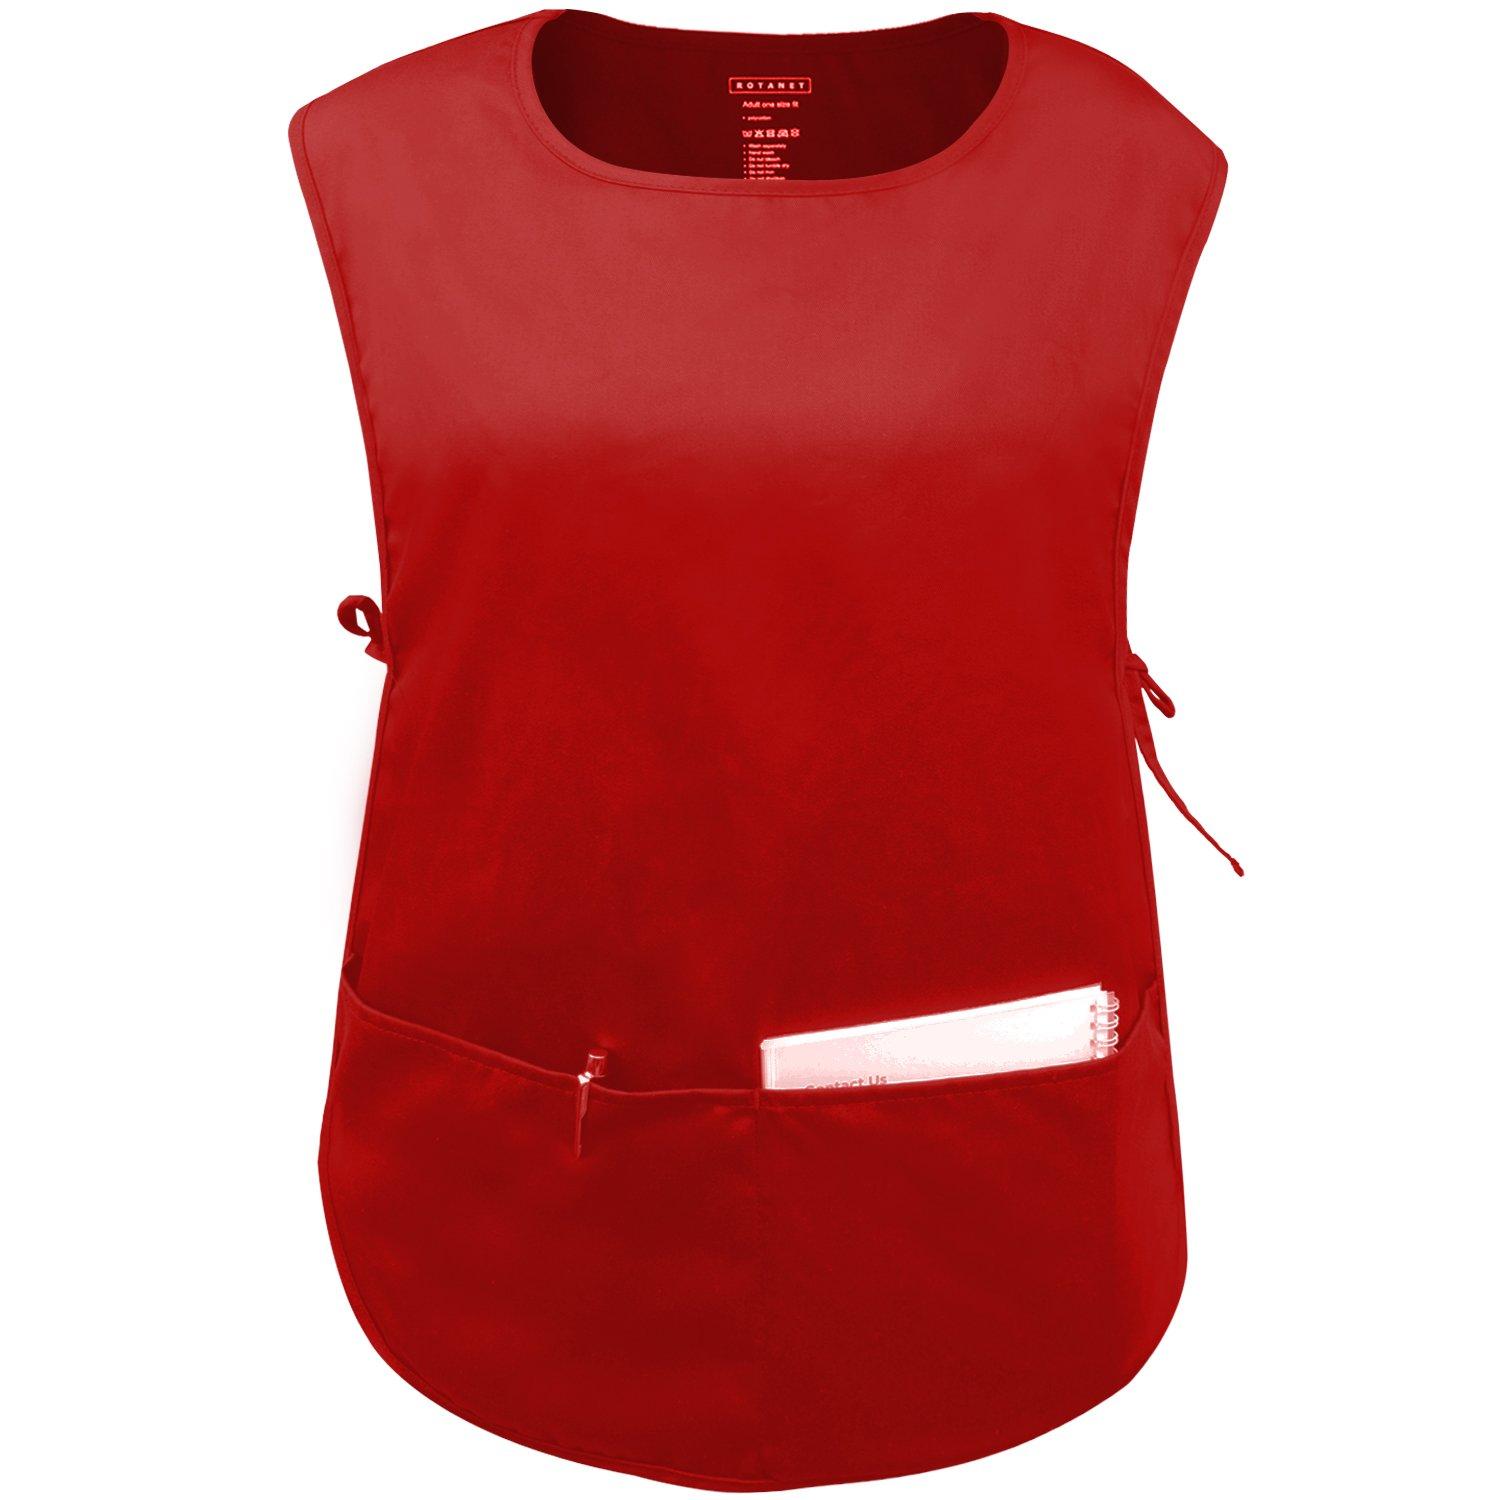 ROTANET Unisex Cobbler Apron - Adjustable Ties/2 Pockets(available in 3 colors)